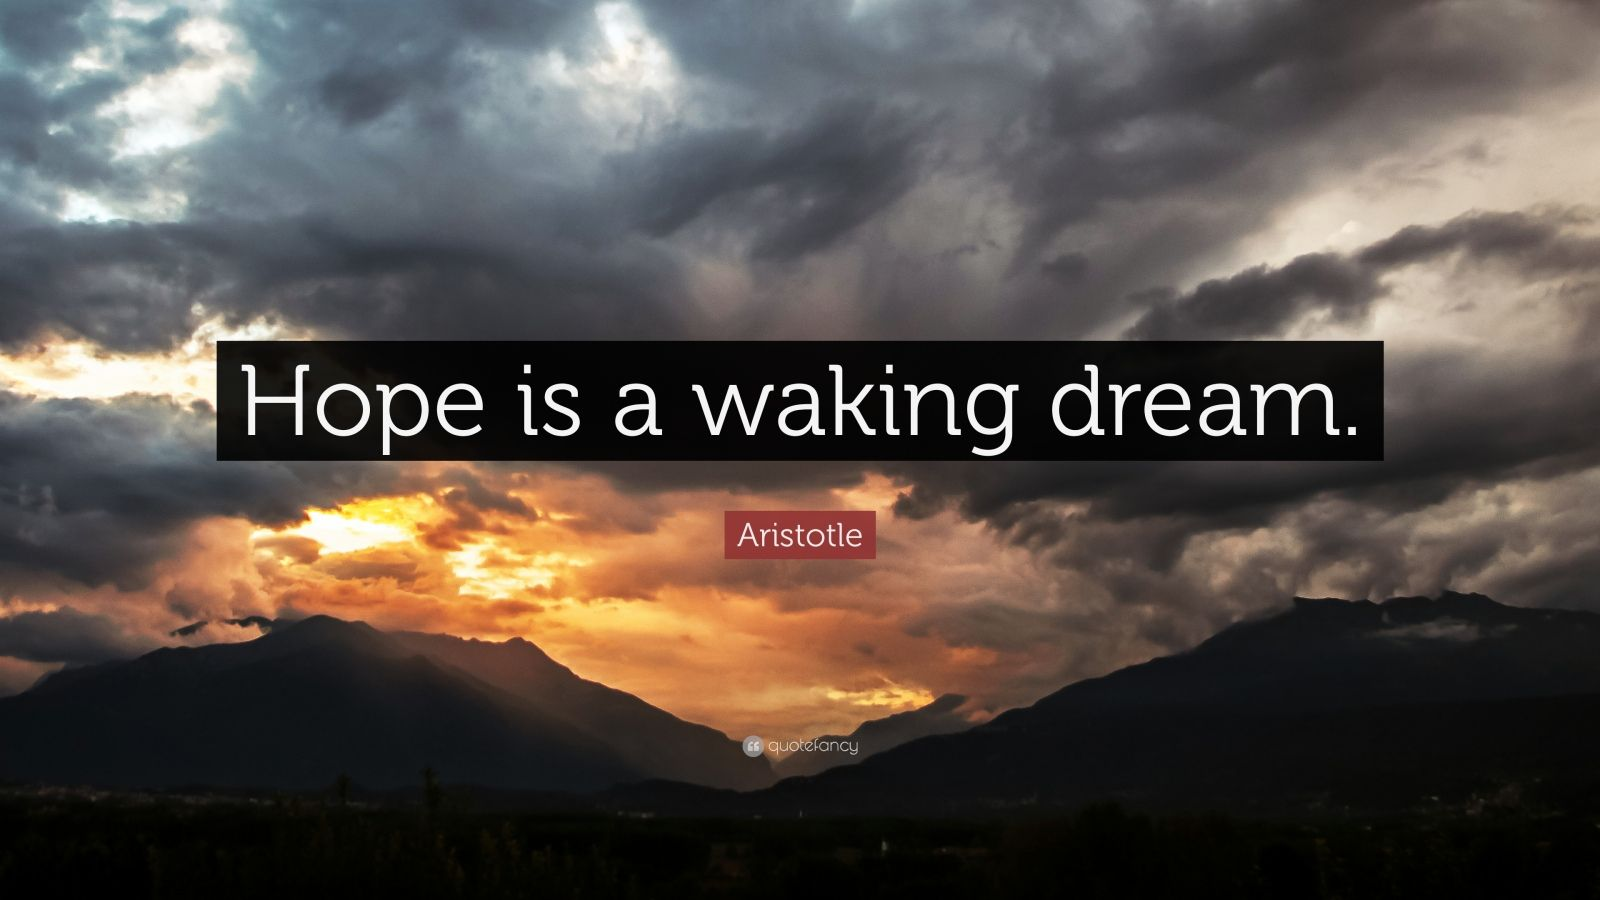 Aristotle Quotes Wallpaper Aristotle Quote Hope Is A Waking Dream 21 Wallpapers